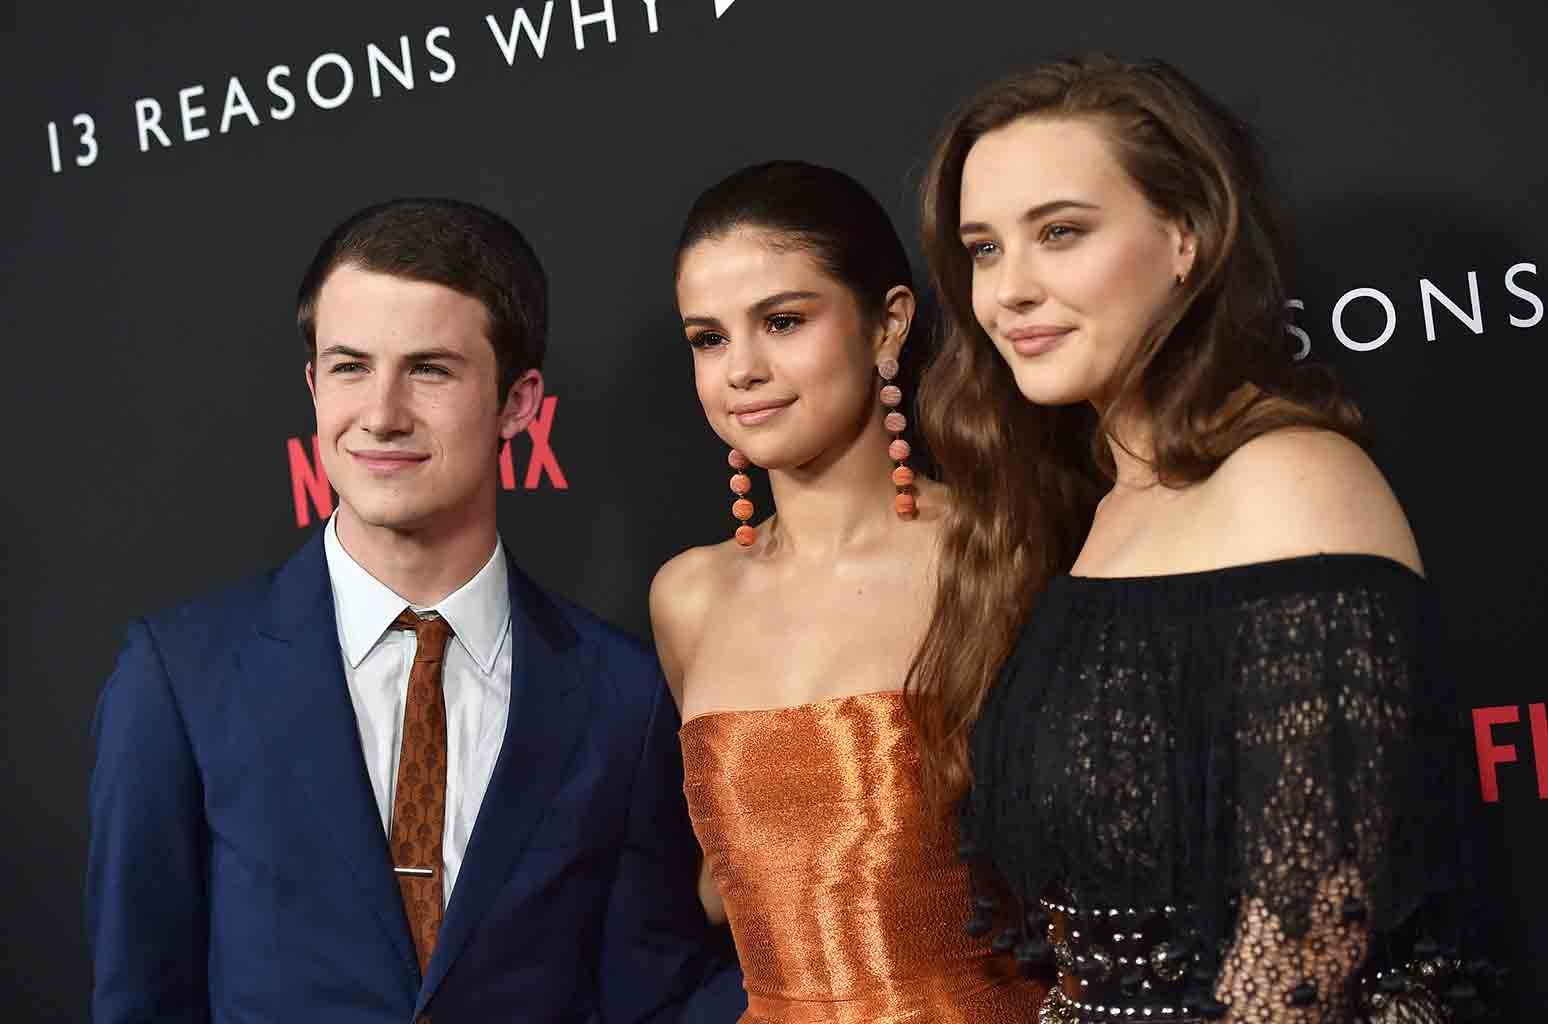 Dylan Minnette, Selena Gomez and Katherine Langford arrive at the Premiere of Netflix's 13 Reasons Why at Paramount Pictures on March 30, 2017 in Los Angeles.